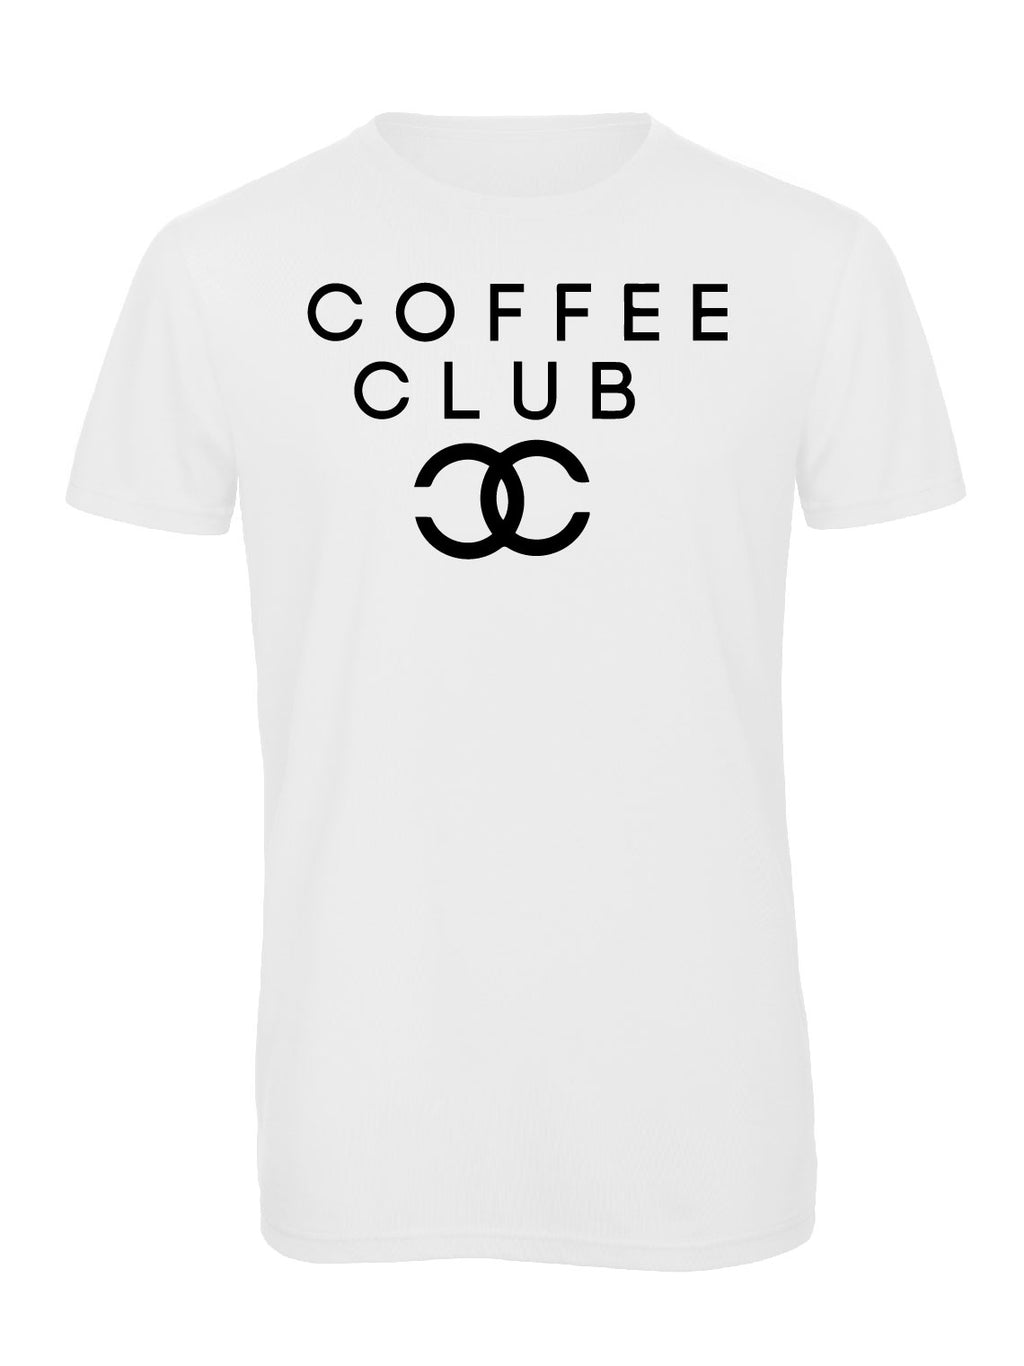 Slogan Tee Coffee Club - White